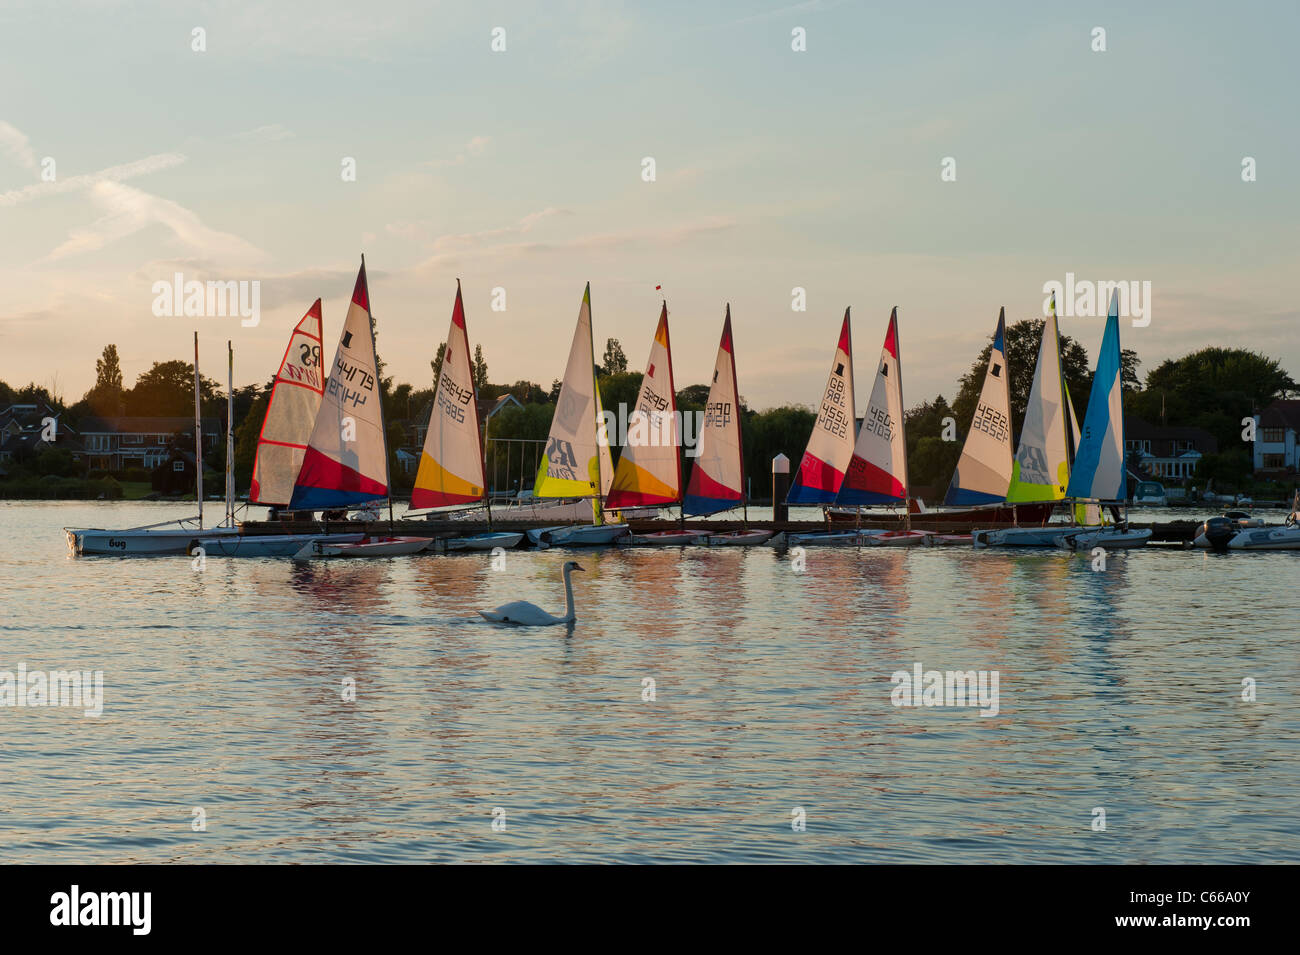 Sailing bugs and white swan on Oulton Broad UK boats Stock Photo